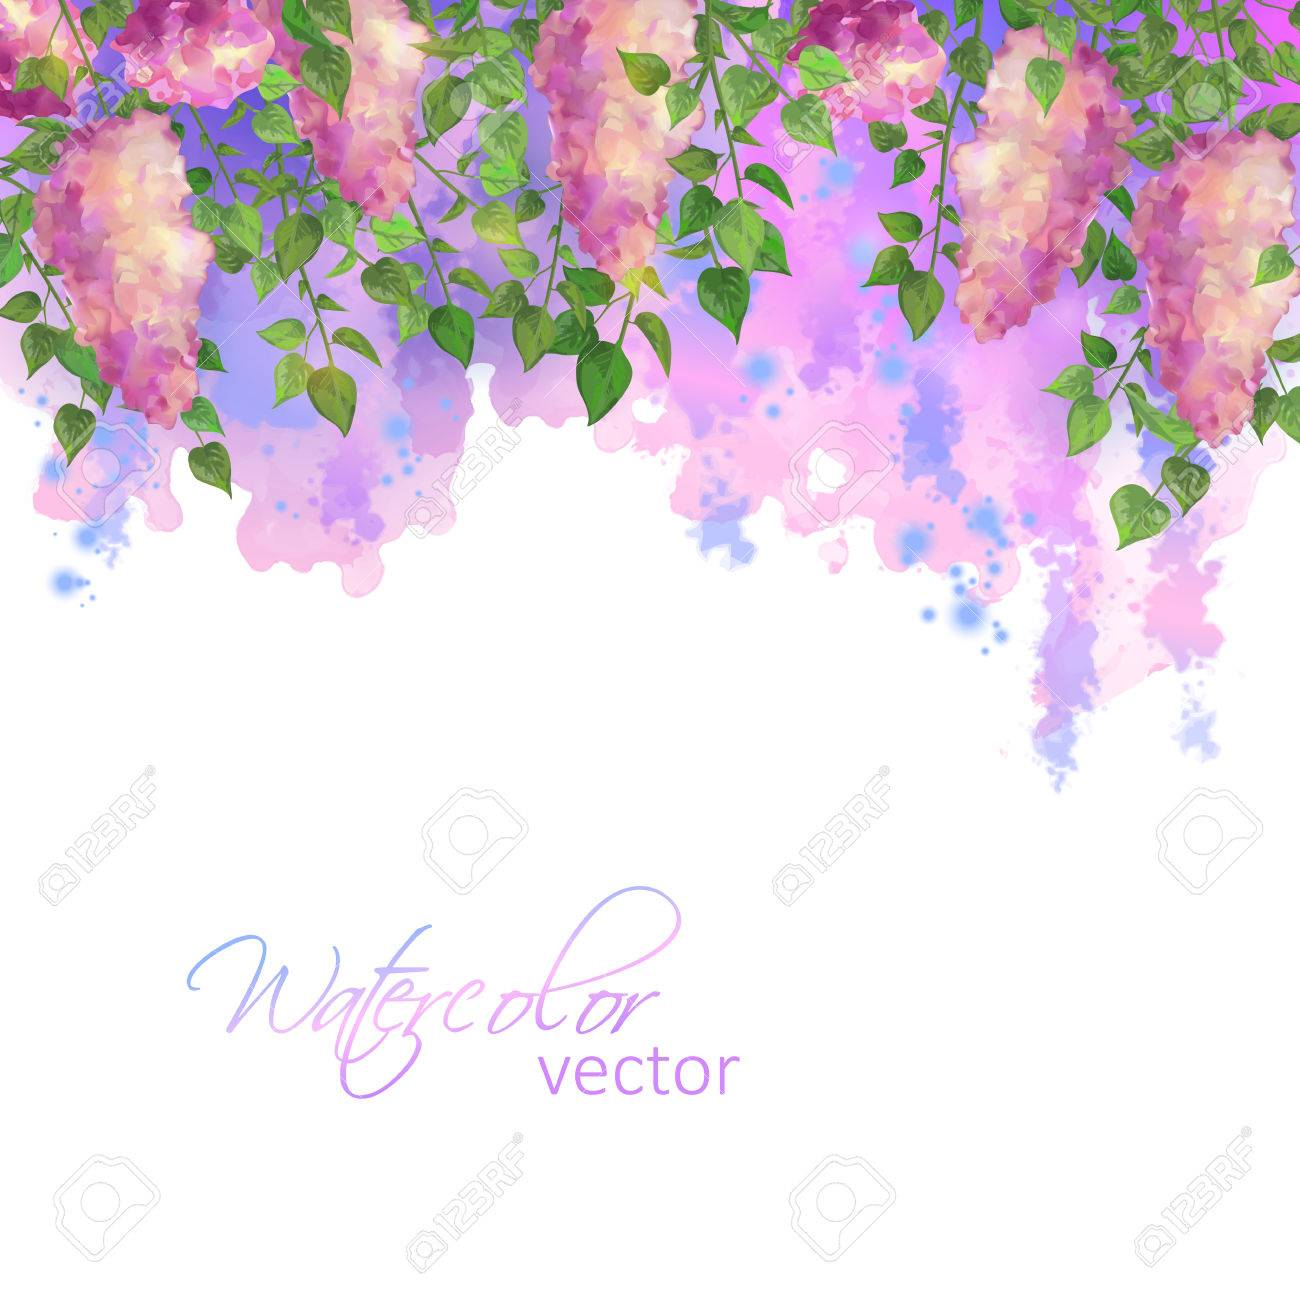 Watercolor vector spring artistic abstract border with flowers and branches of lilac, streaks, blobs - 52899197